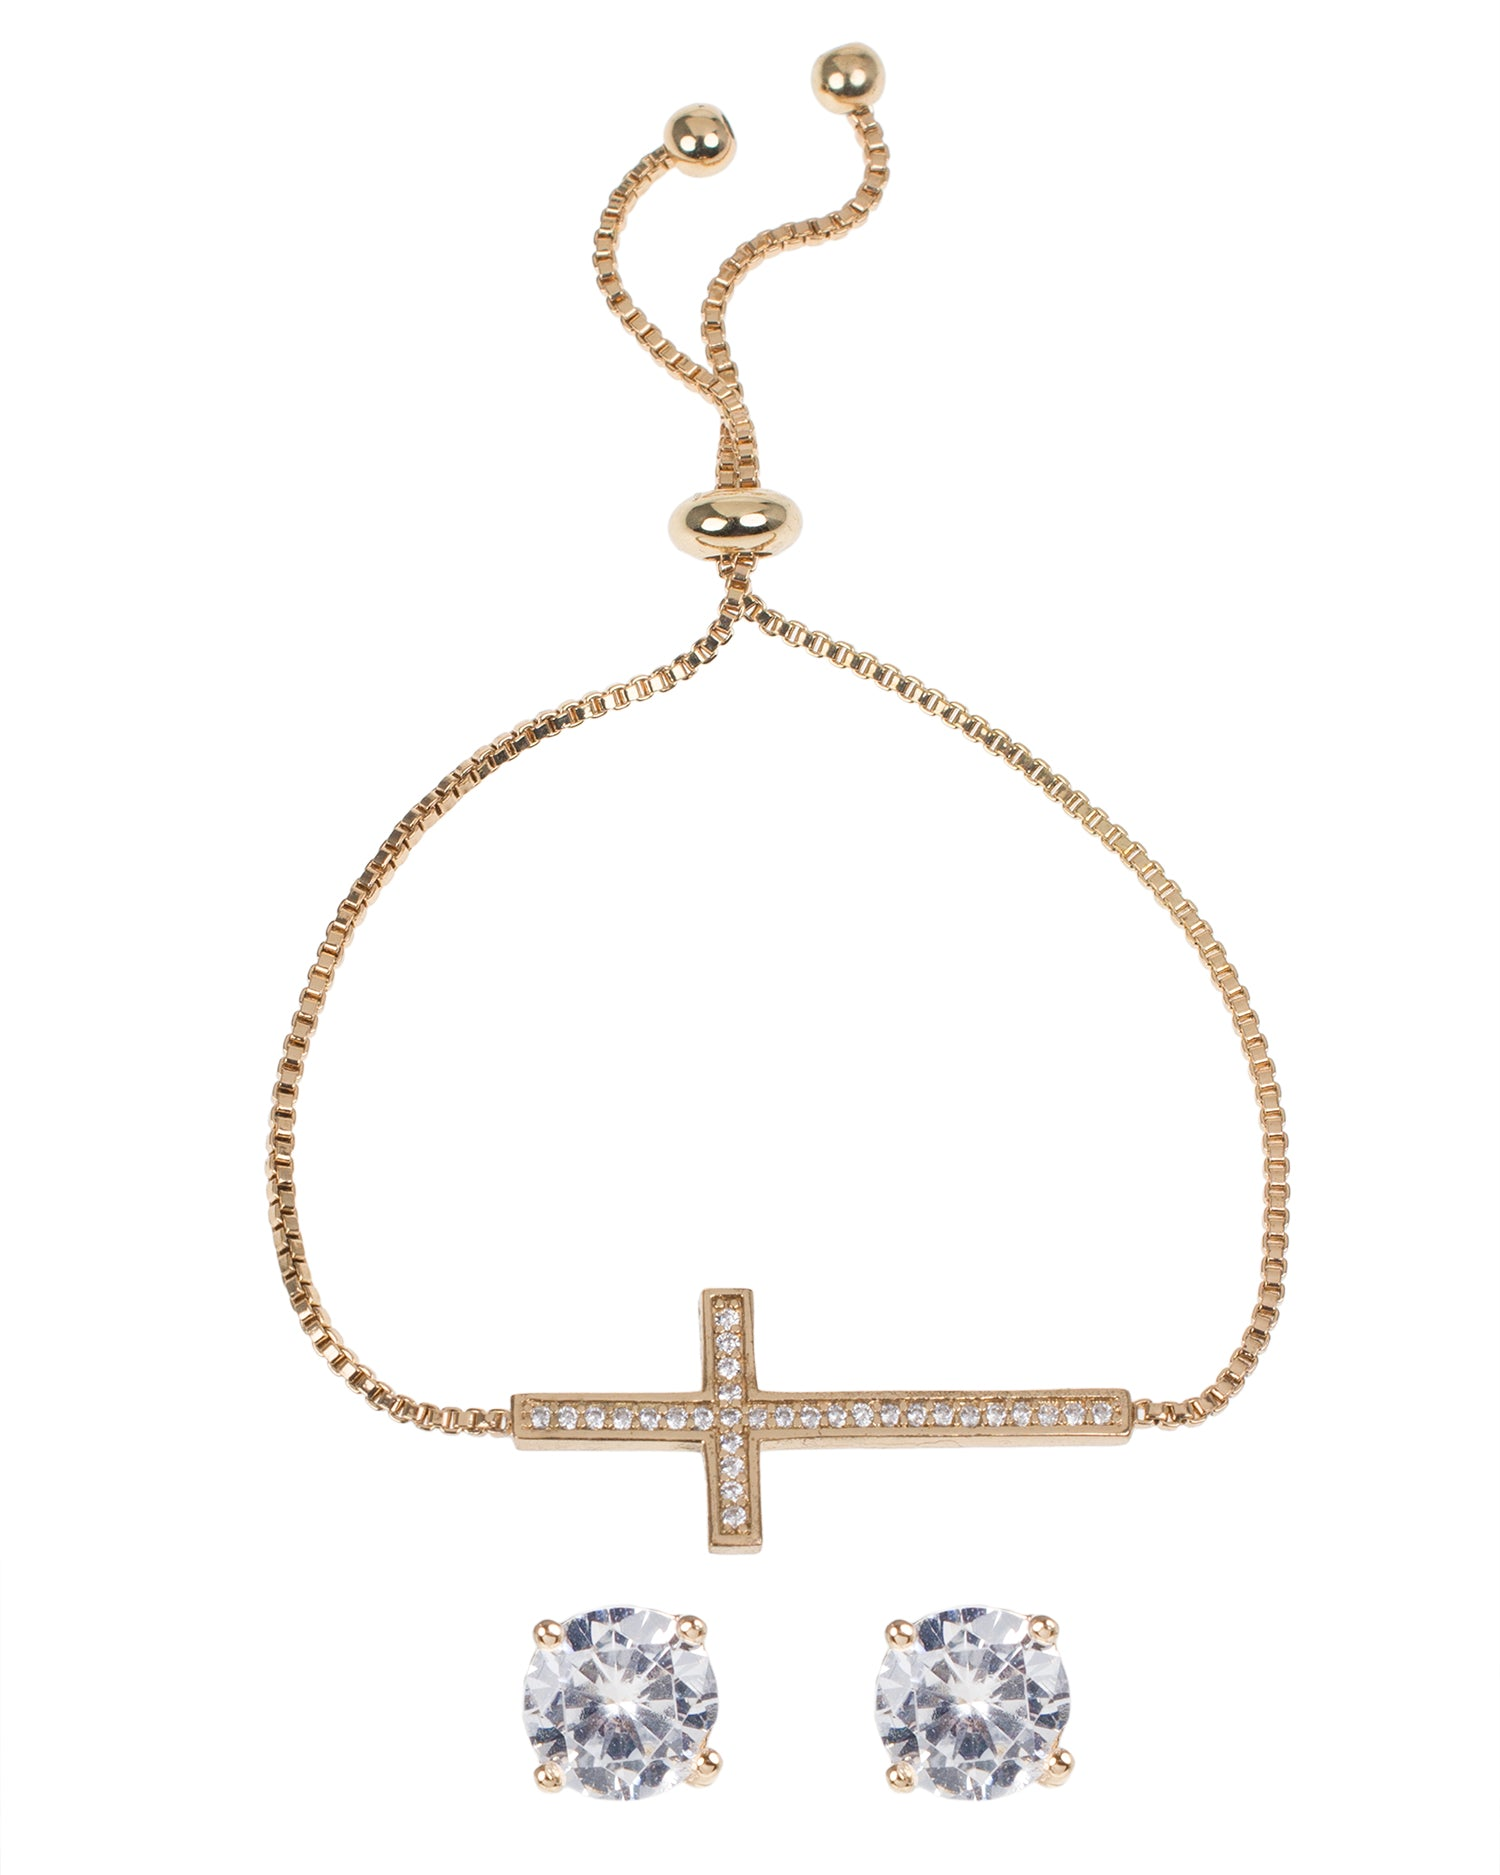 Pave CZ Cross Bolo Bracelet with Round Stud Earring Set in Yellow Gold